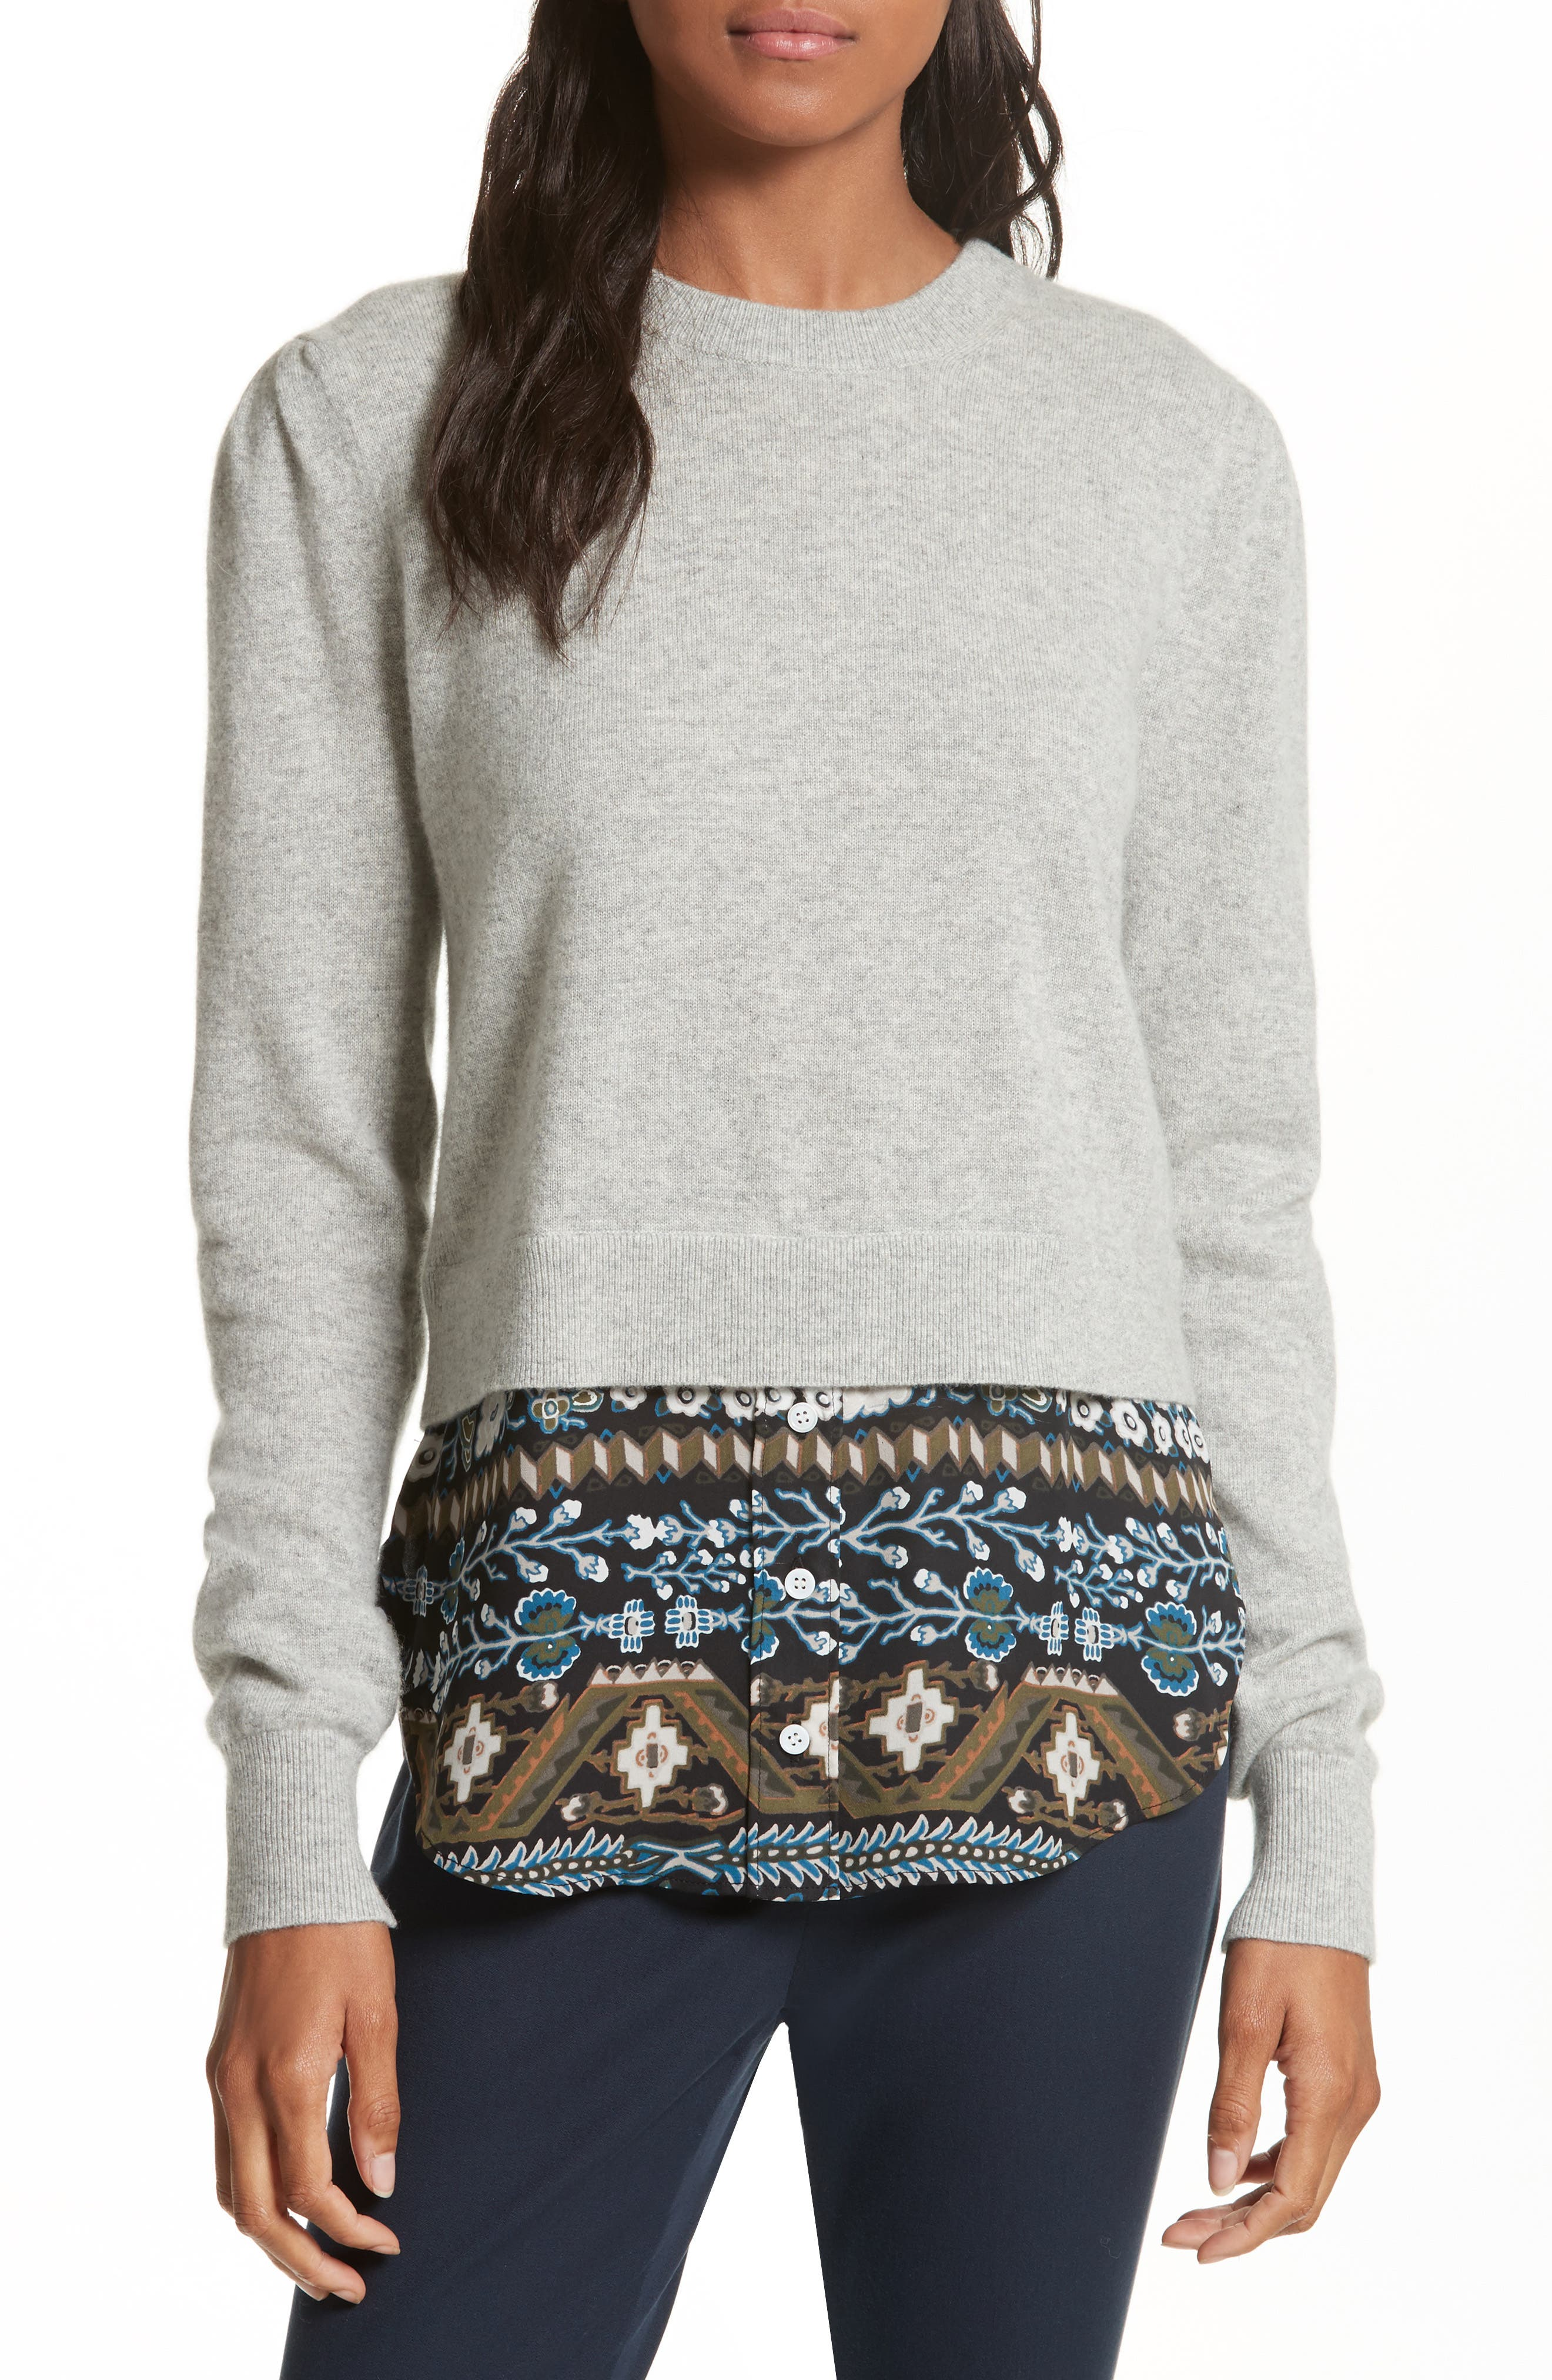 Jenson Layered Hem Cashmere Sweater,                         Main,                         color, Grey/ Army/ Black Aztec Print